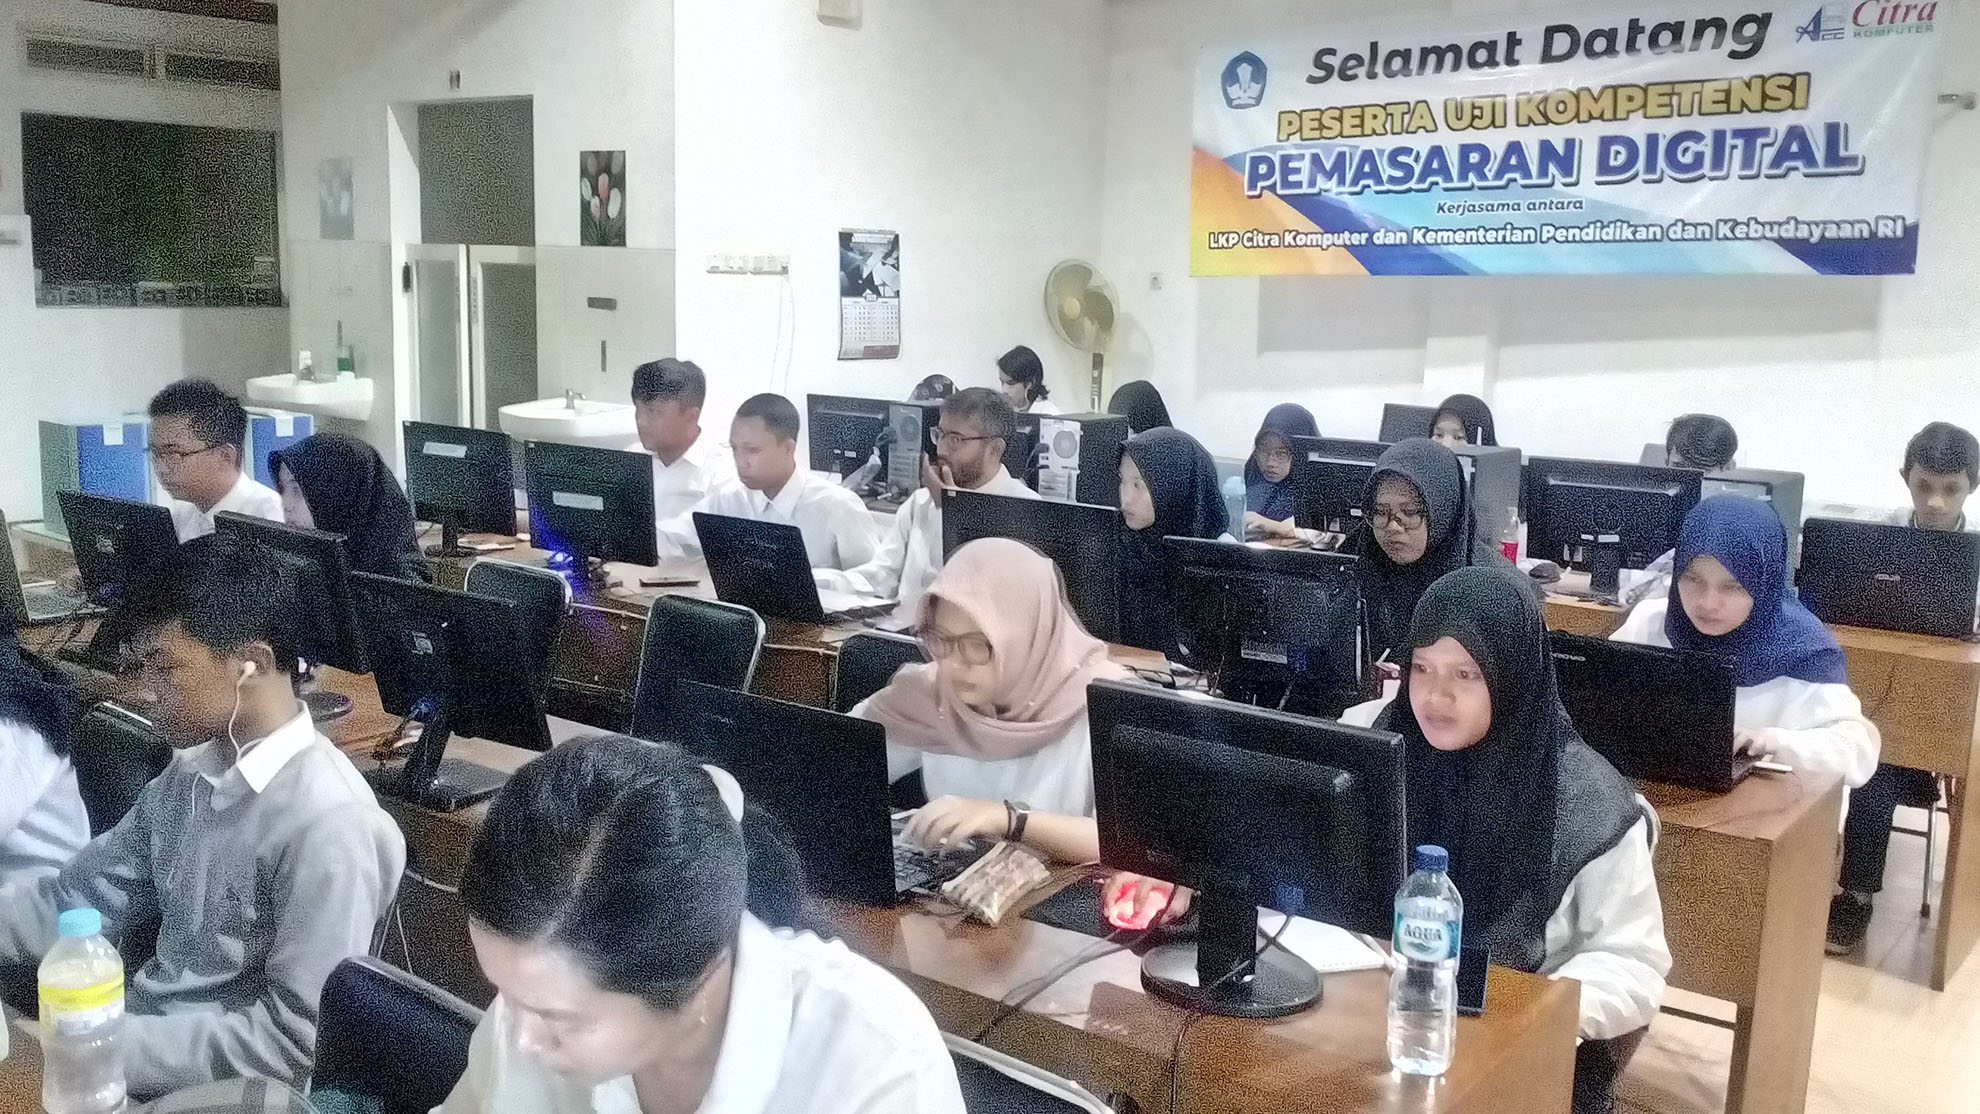 LSK Digital Teknologi & Bisnis Siap Melaksanakan Uji Kompetensi Digital Marketing